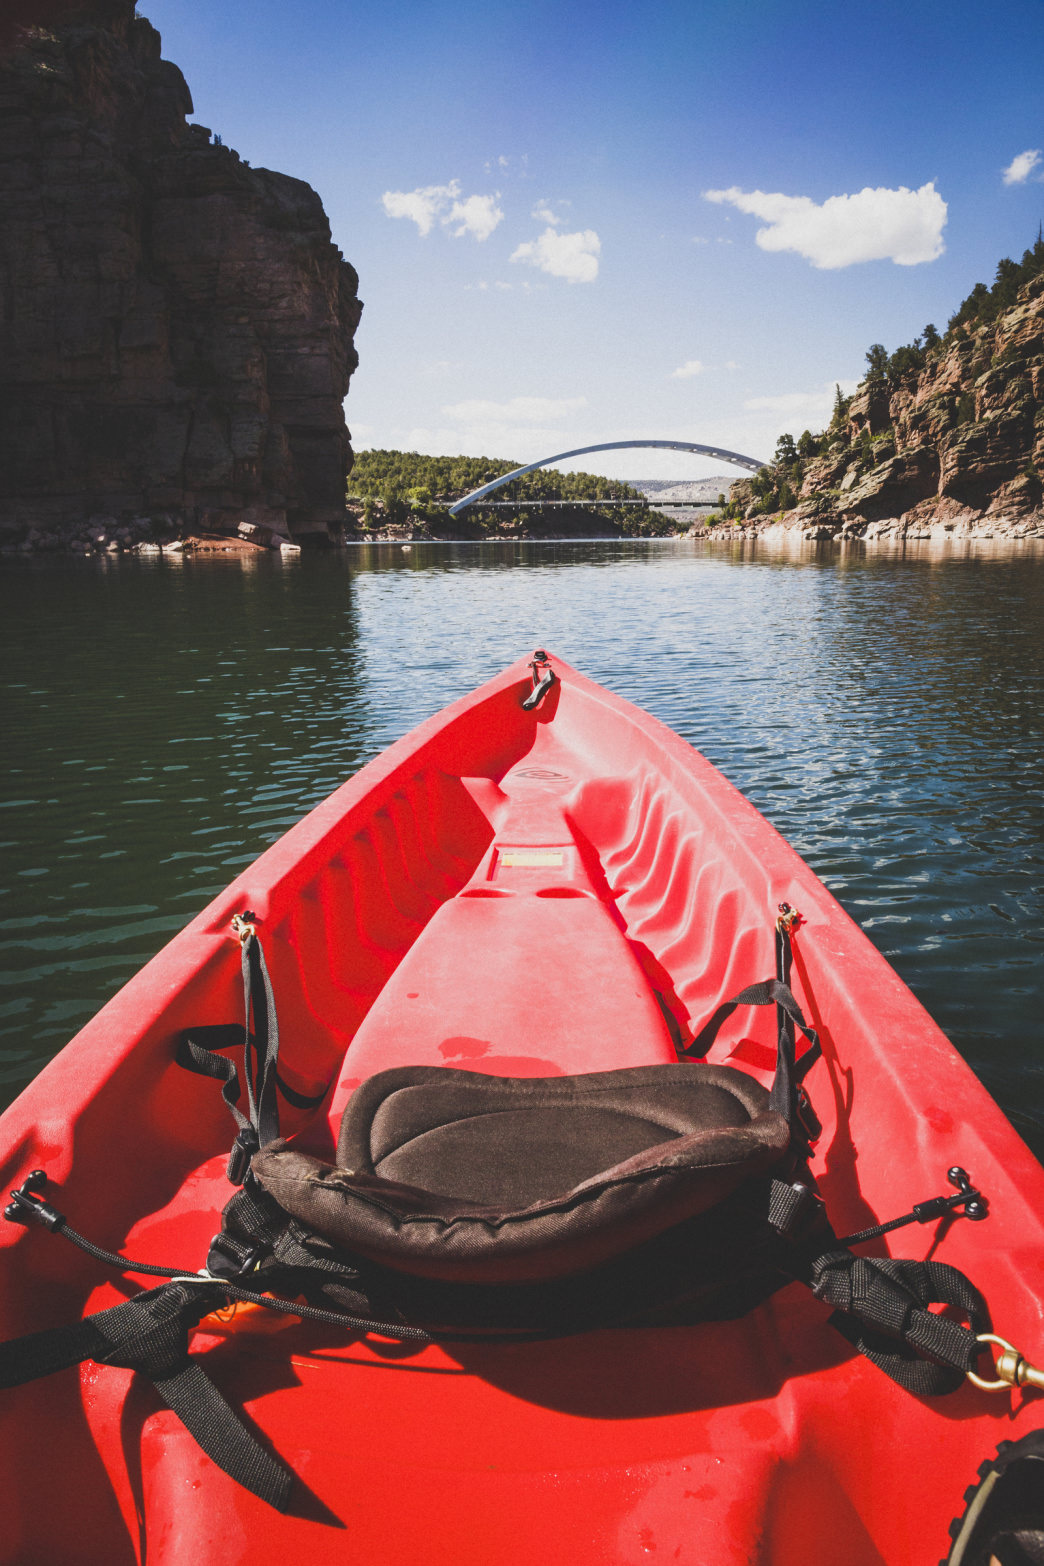 A kayak makes its way across Cart Creek Canyon, Flaming Gorge Reservoir, Utah.